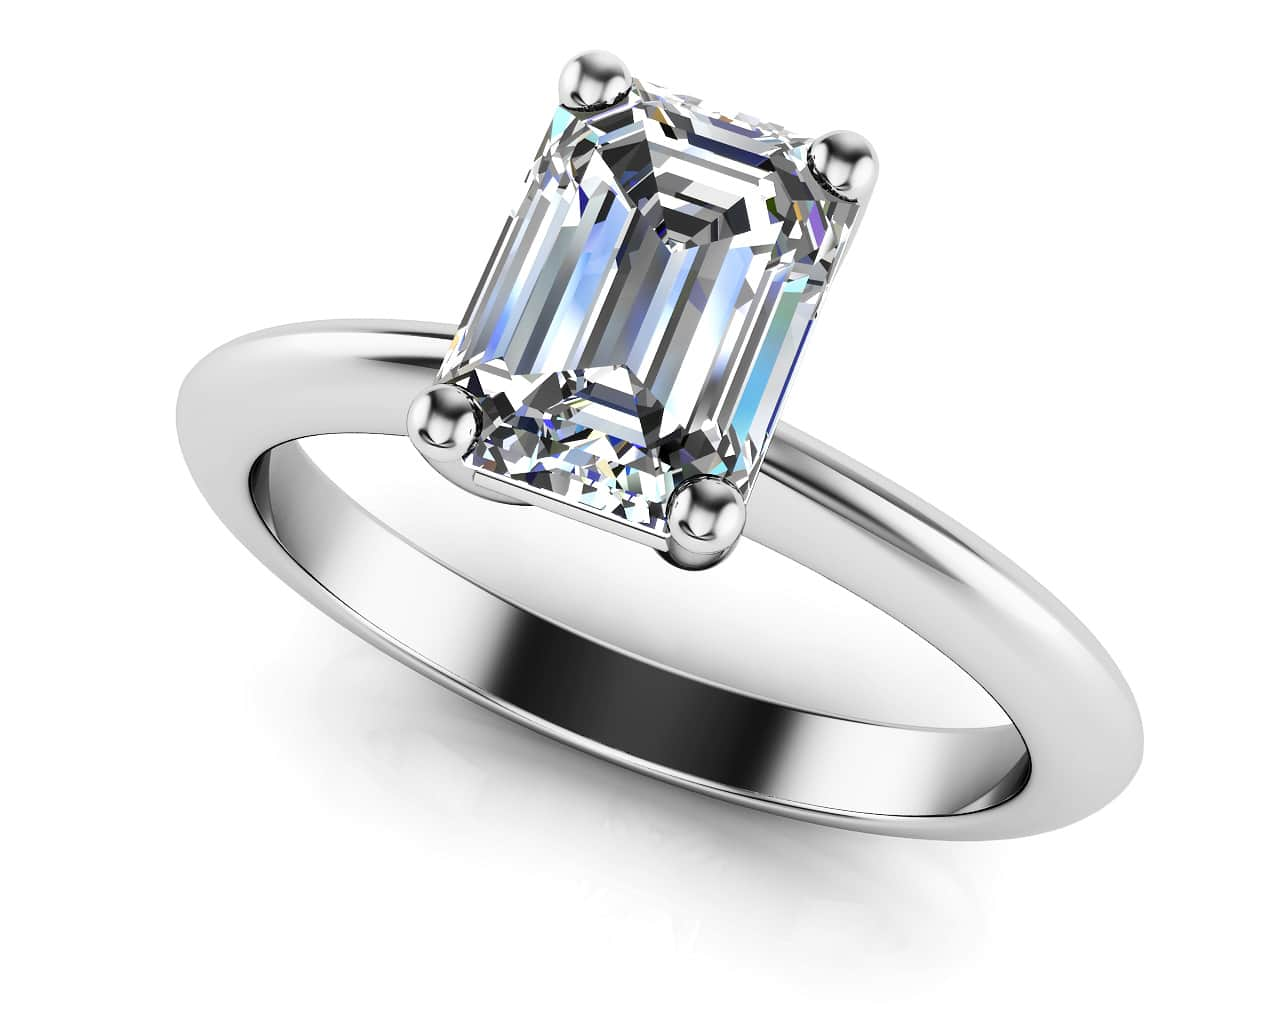 Classic Emerald Cut Diamond Engagement Ring In 14k 18k Yellow Gold Or White Gold